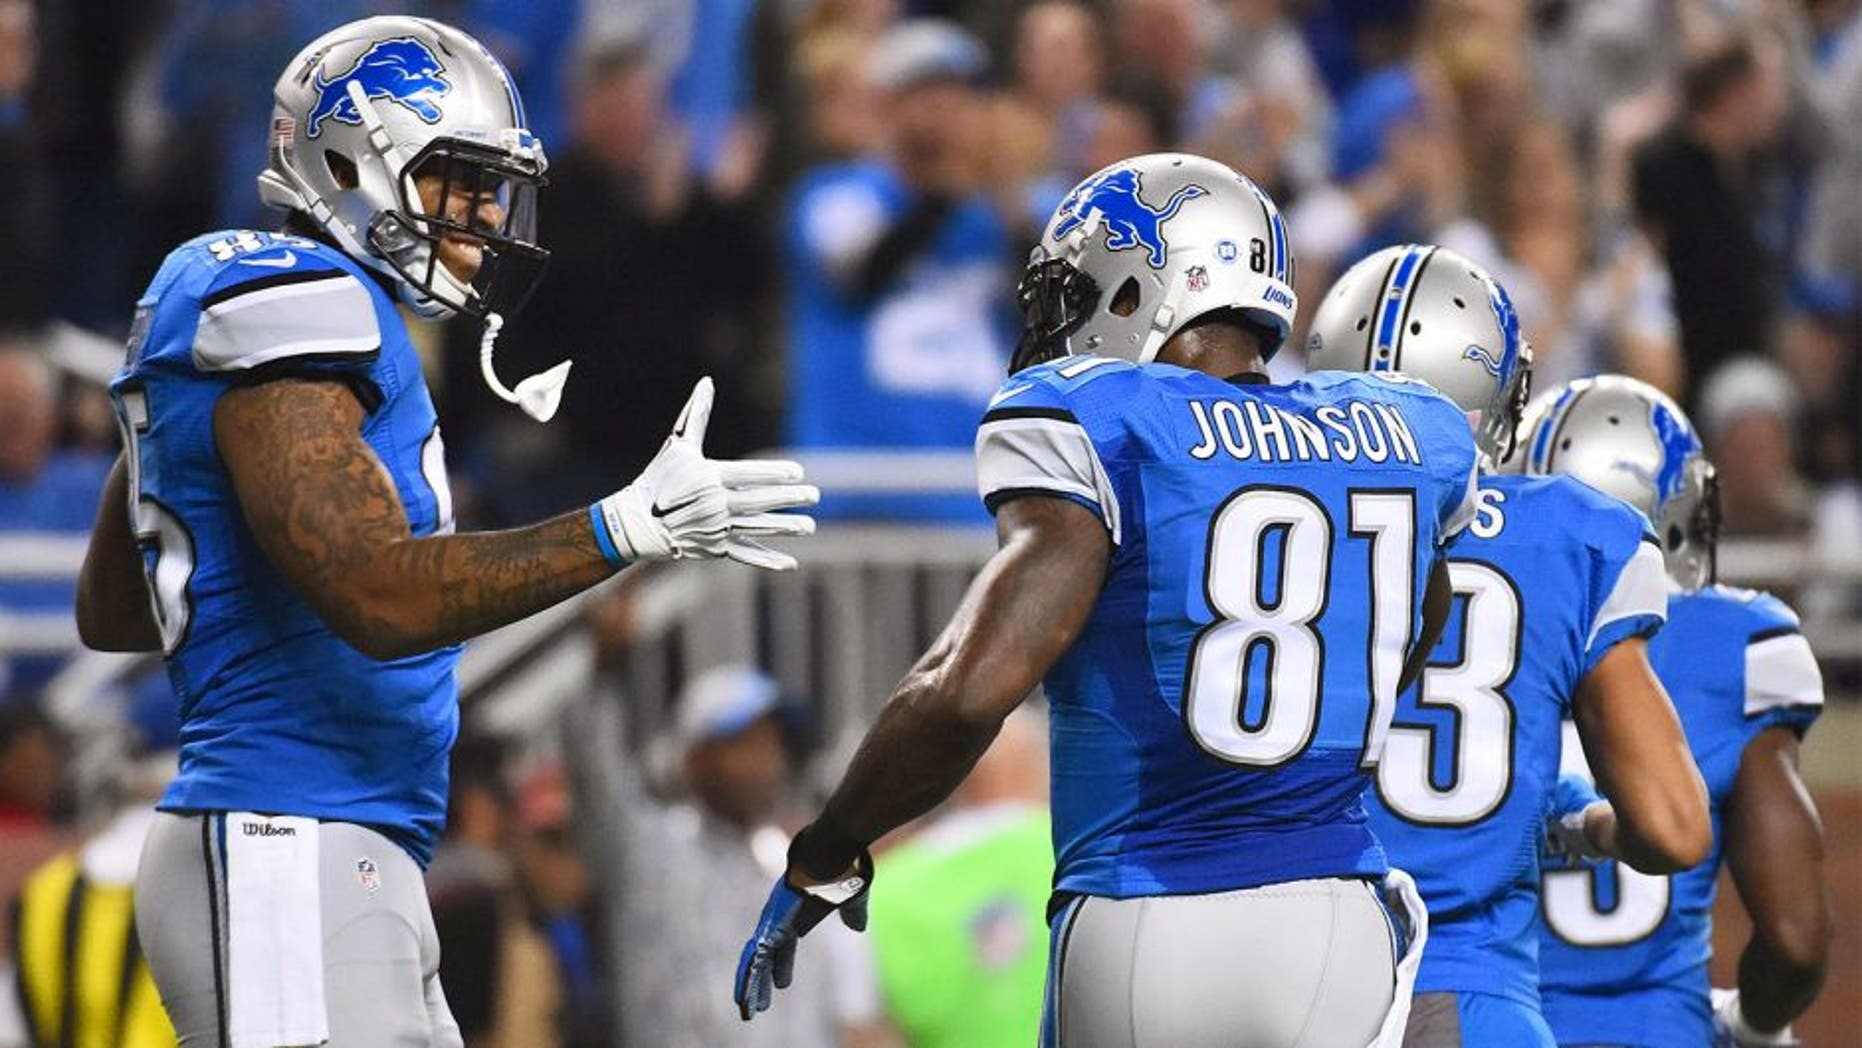 Dec 3, 2015; Detroit, MI, USA; Detroit Lions tight end Eric Ebron (85) celebrates his touchdown with wide receiver Calvin Johnson (81) during the first quarter against the Green Bay Packers at Ford Field. Mandatory Credit: Tim Fuller-USA TODAY Sports